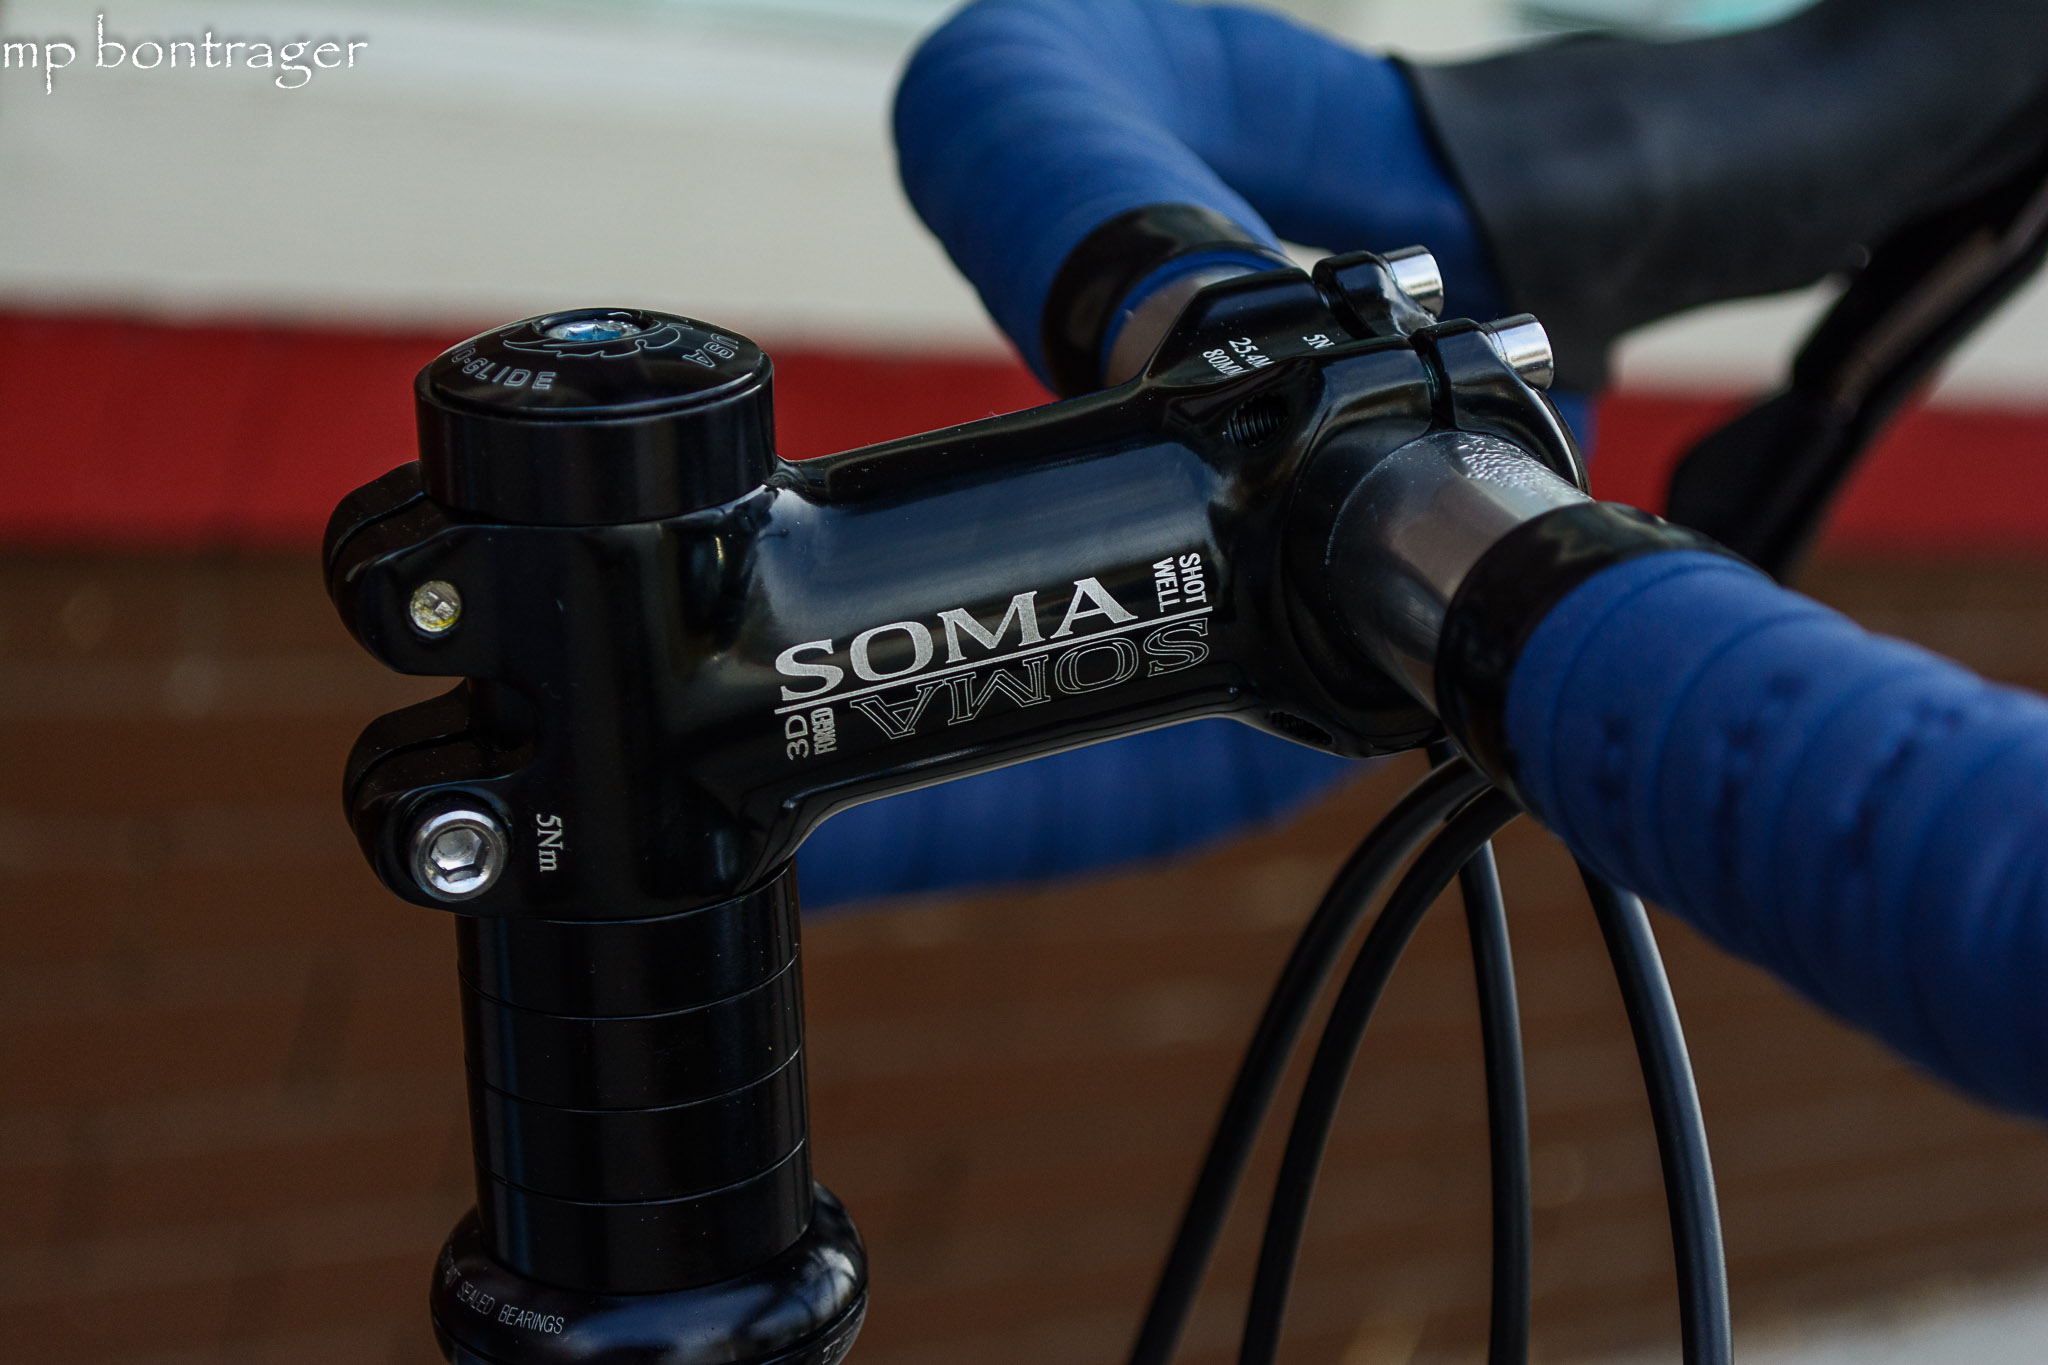 Soma stem, Tange headset, NITTO handle bars